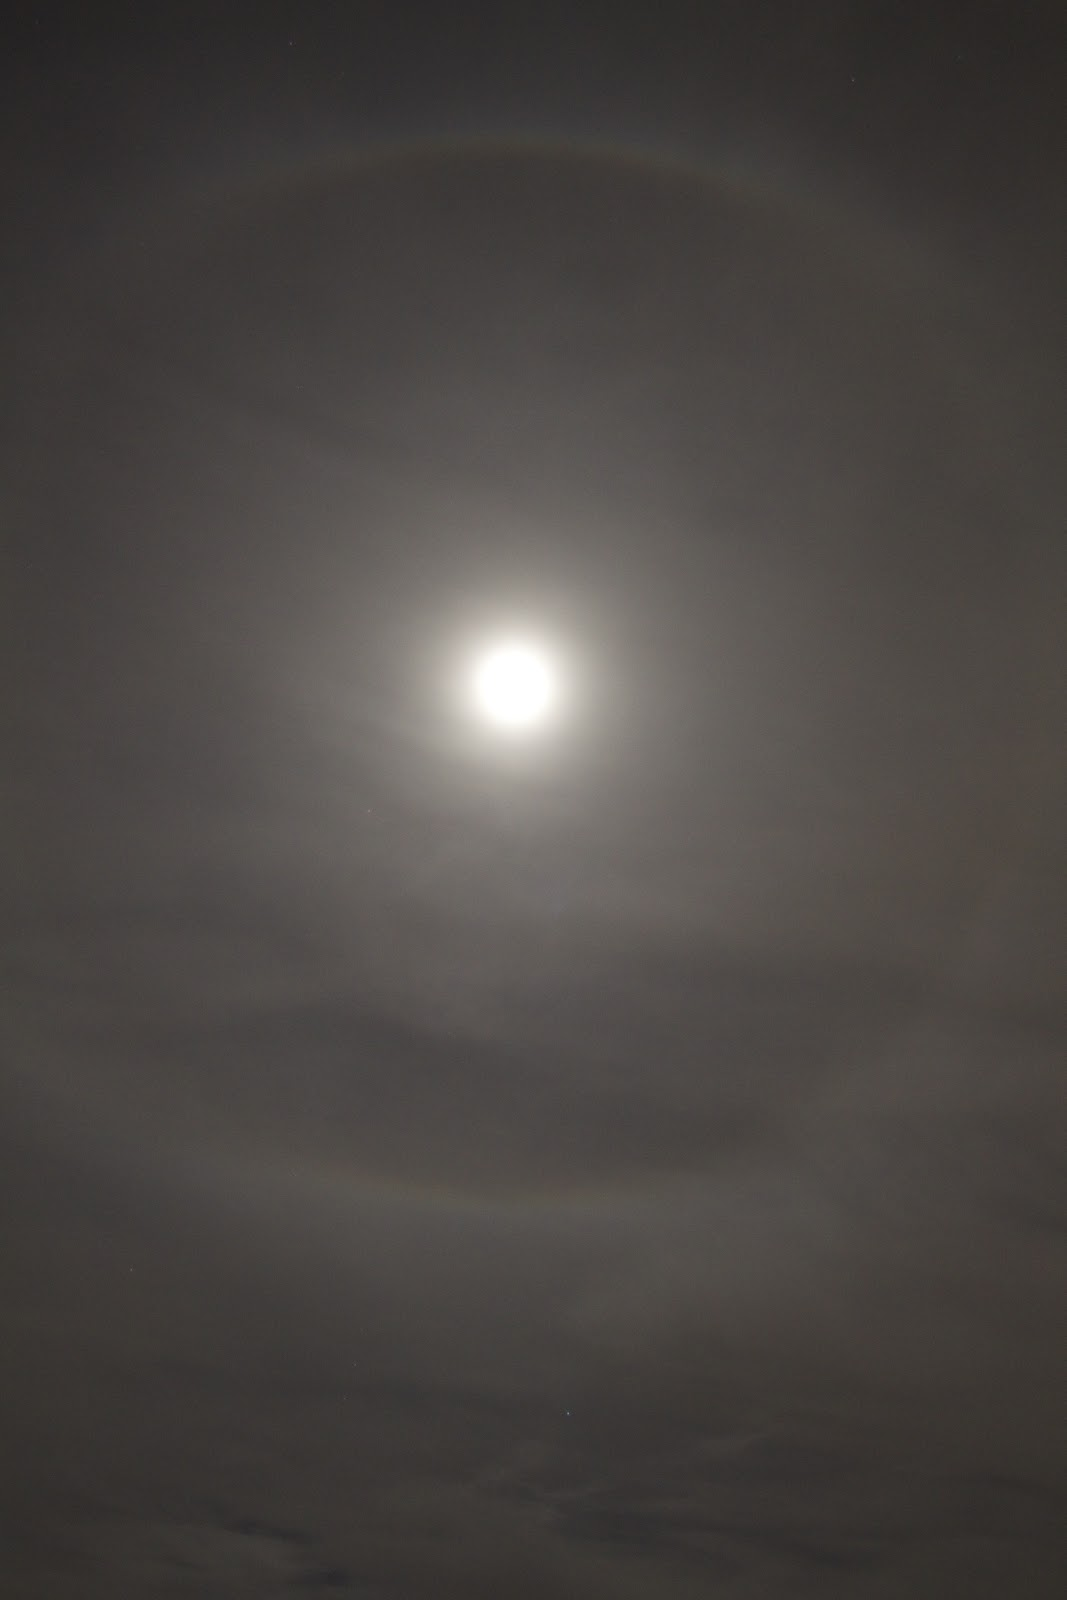 ring around moon tonight halo